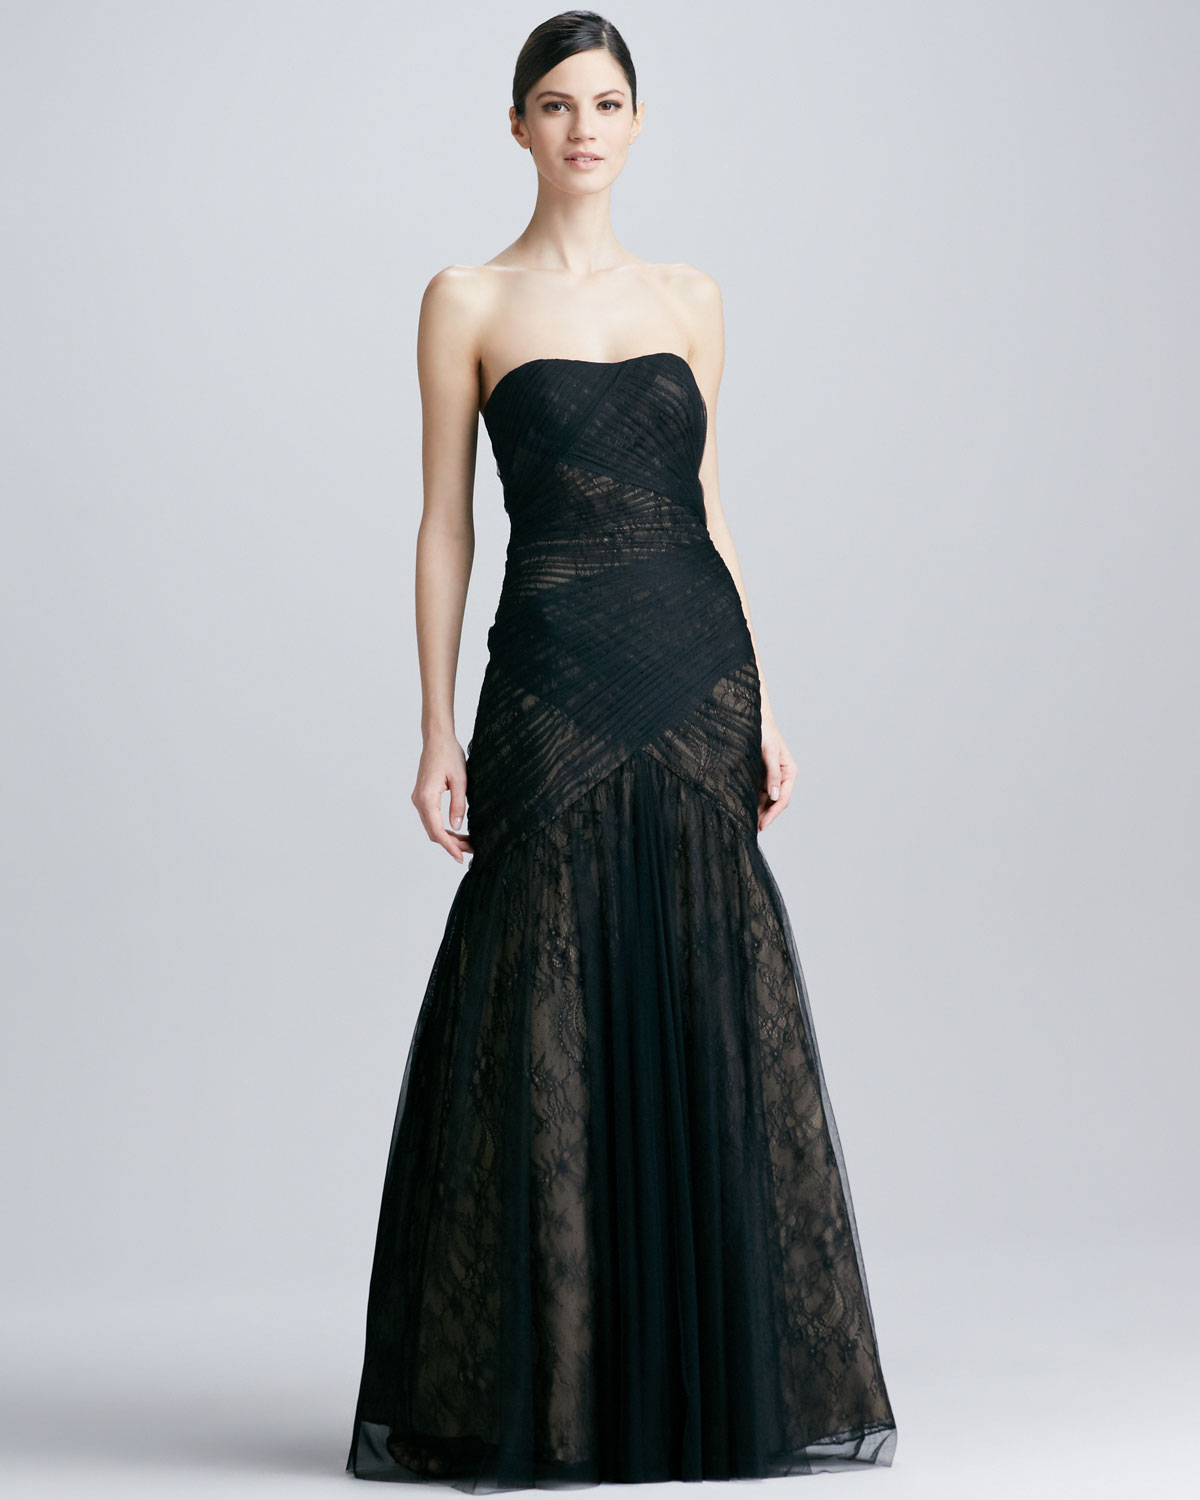 Lyst - Ml Monique Lhuillier Strapless Lace Tulle Gown in Black